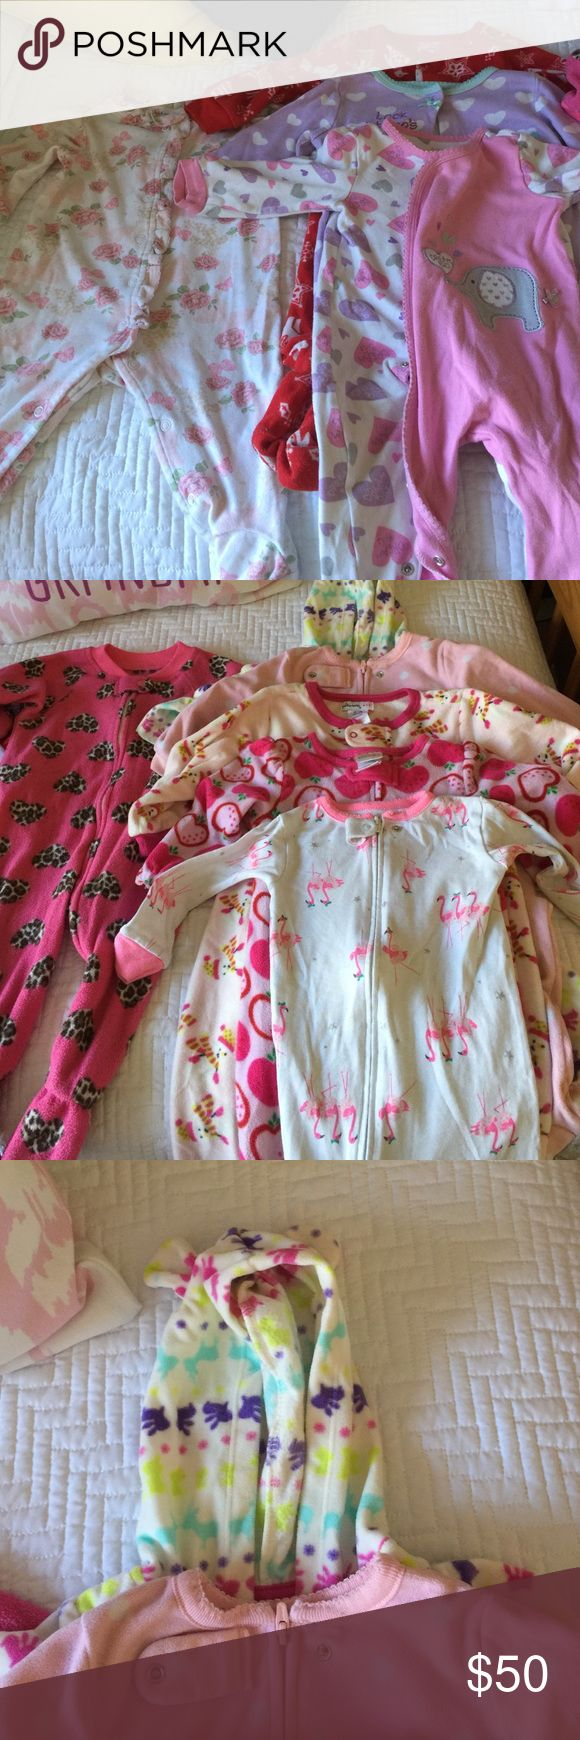 Baby girl footie Pj's 6-9, 9, 9-12 & 12 months Baby girl footie Pajamas 6-9, 9, 9-12 & 12 months. Only one at 6-9 months, 3 at 9 months, 1 @ 9-12 months & 5 at 12 months. You Must Choose 1 or 2+ to bundle. Not selling this as a whole. I will make a separate listing for the one you choose. Many brand names. All babies items for sale belong to my granddaughter. I'm selling to put the proceeds in her savings account. Look at all the other items I'm selling for her! Thanks! One Pieces